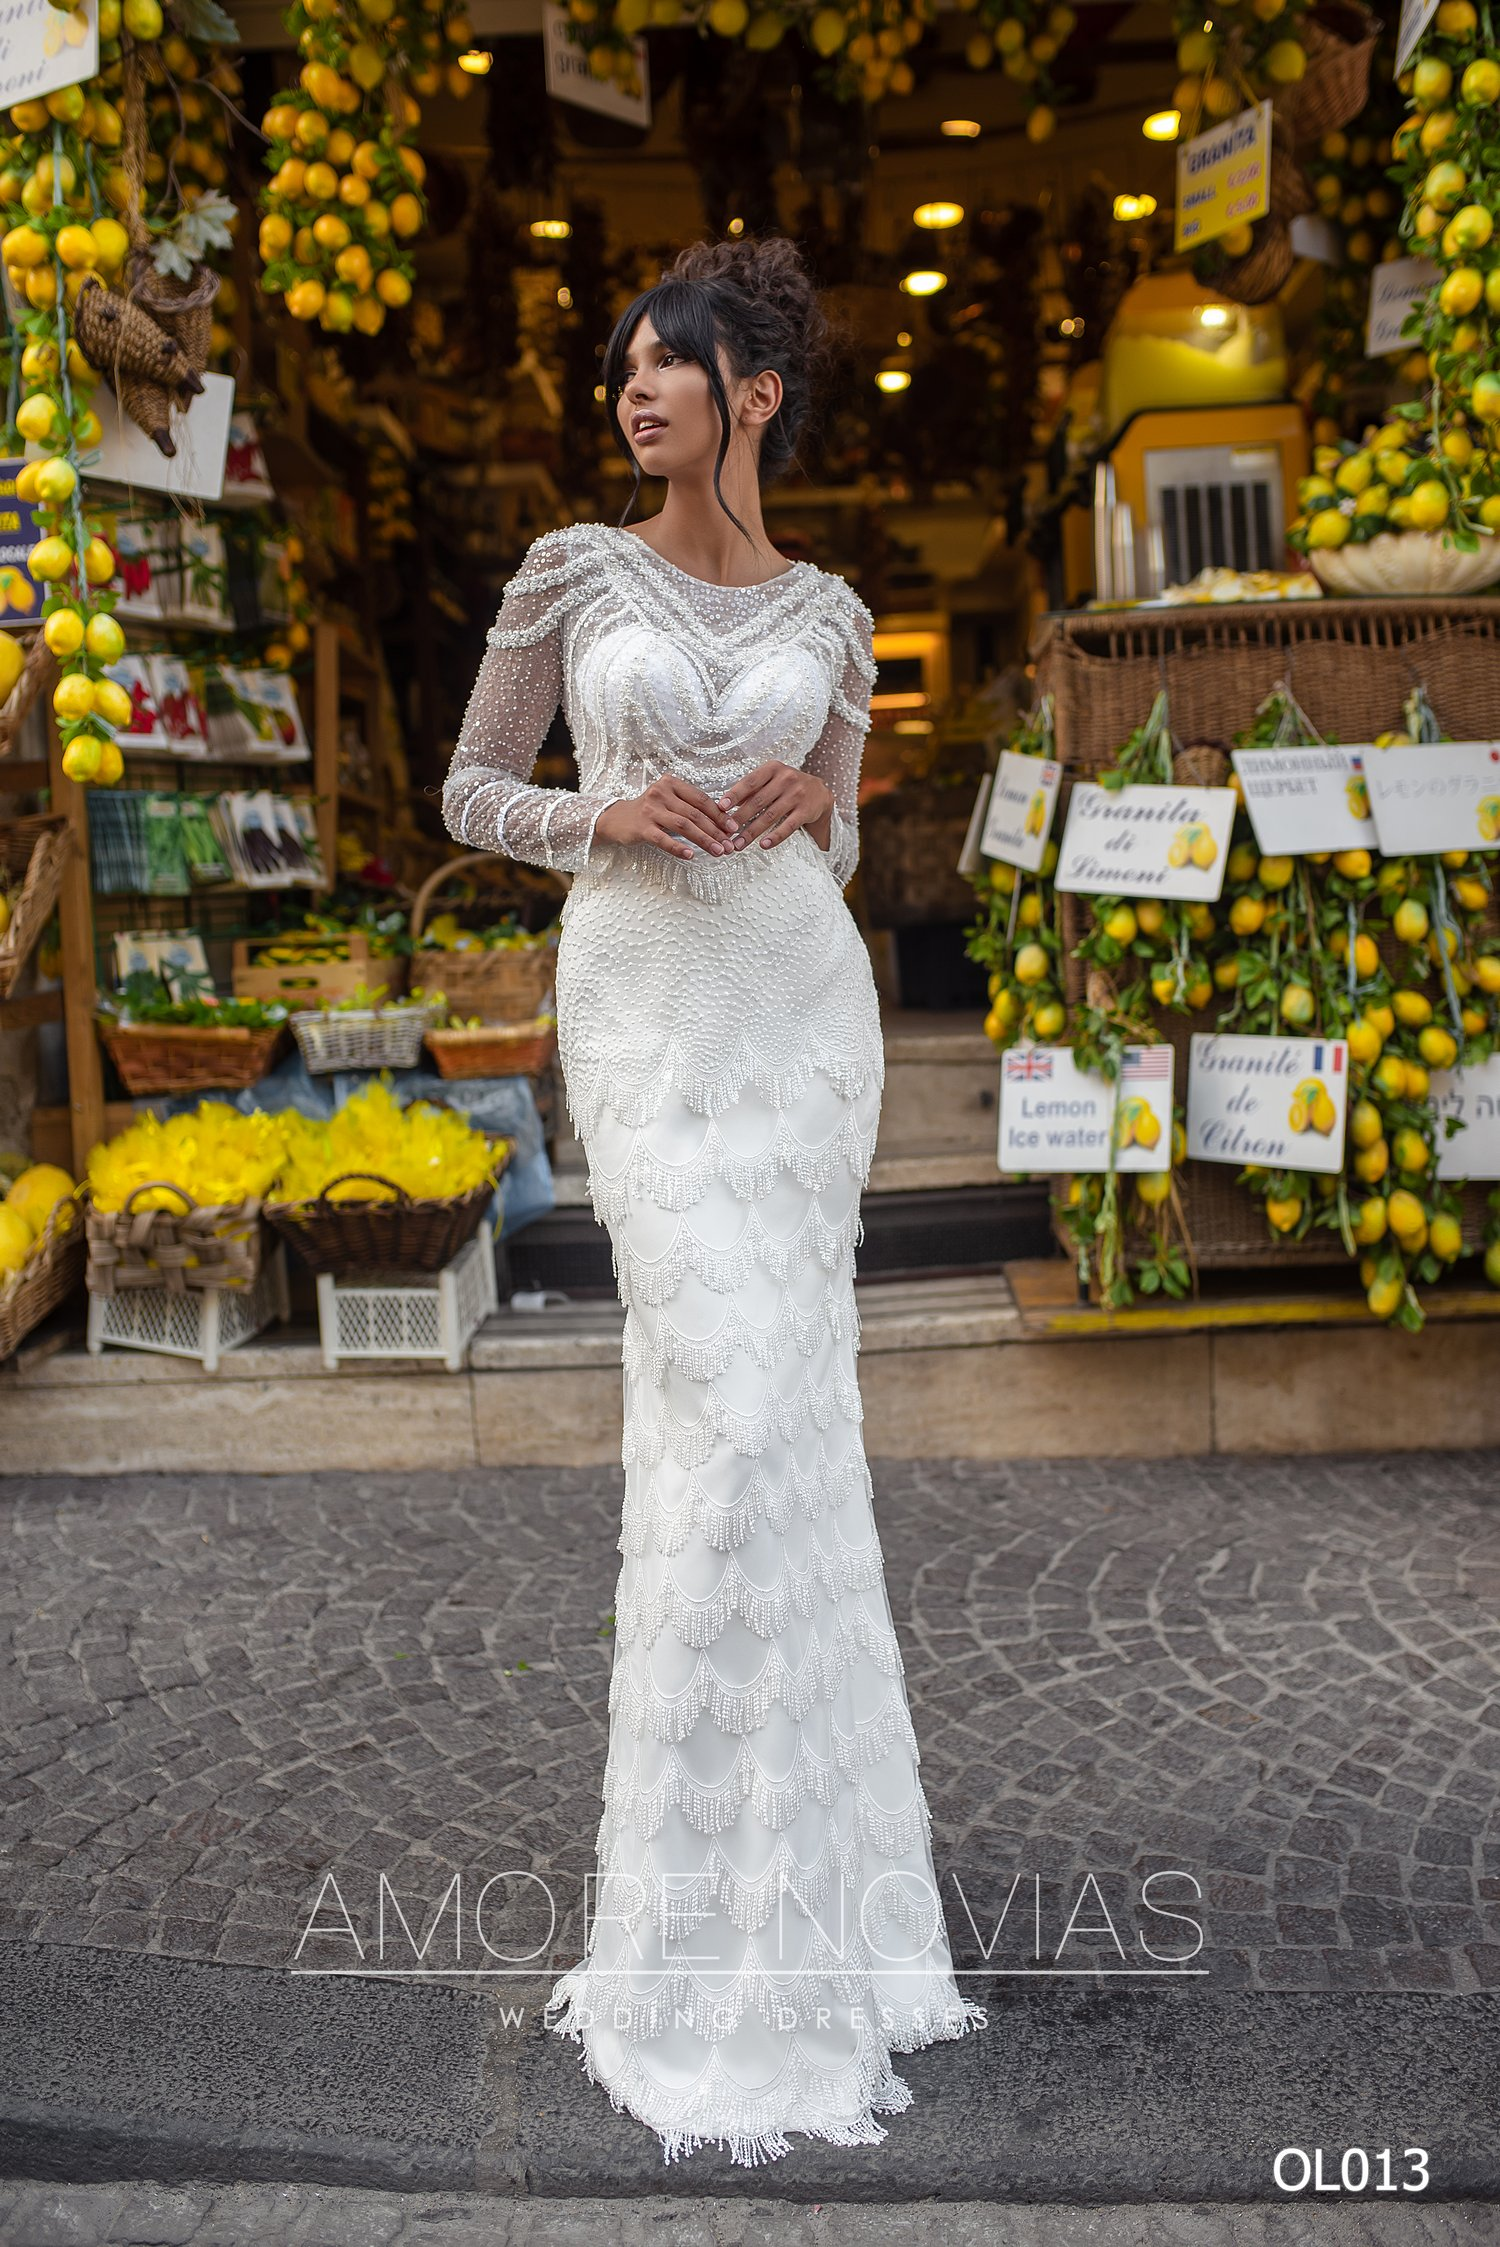 http://amore-novias.com/images/stories/virtuemart/product/OL013       (1).jpg